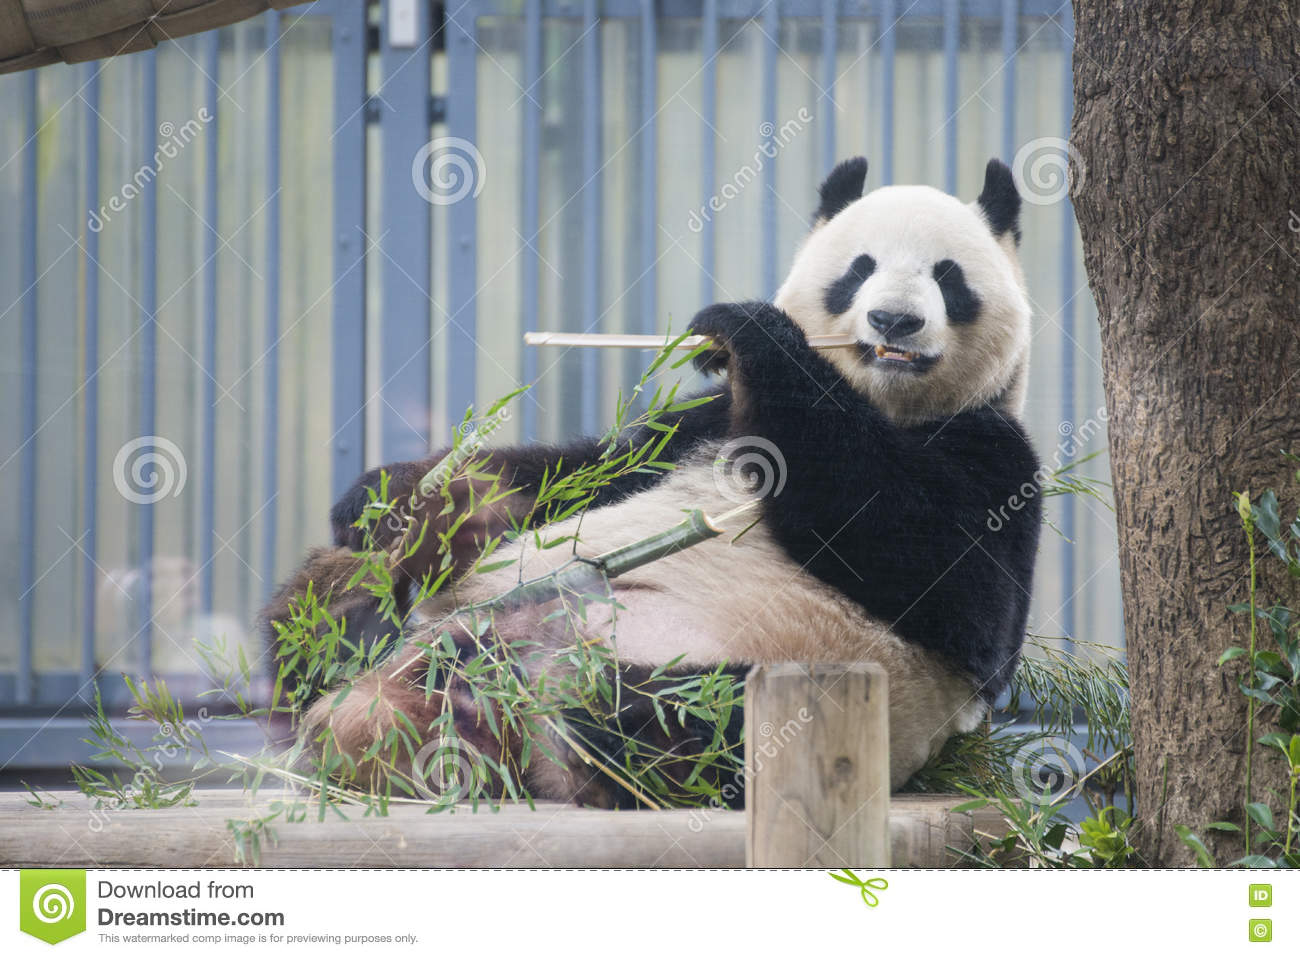 Ueno, Japan - February 24, 2016 : Giant panda bear eating fresh